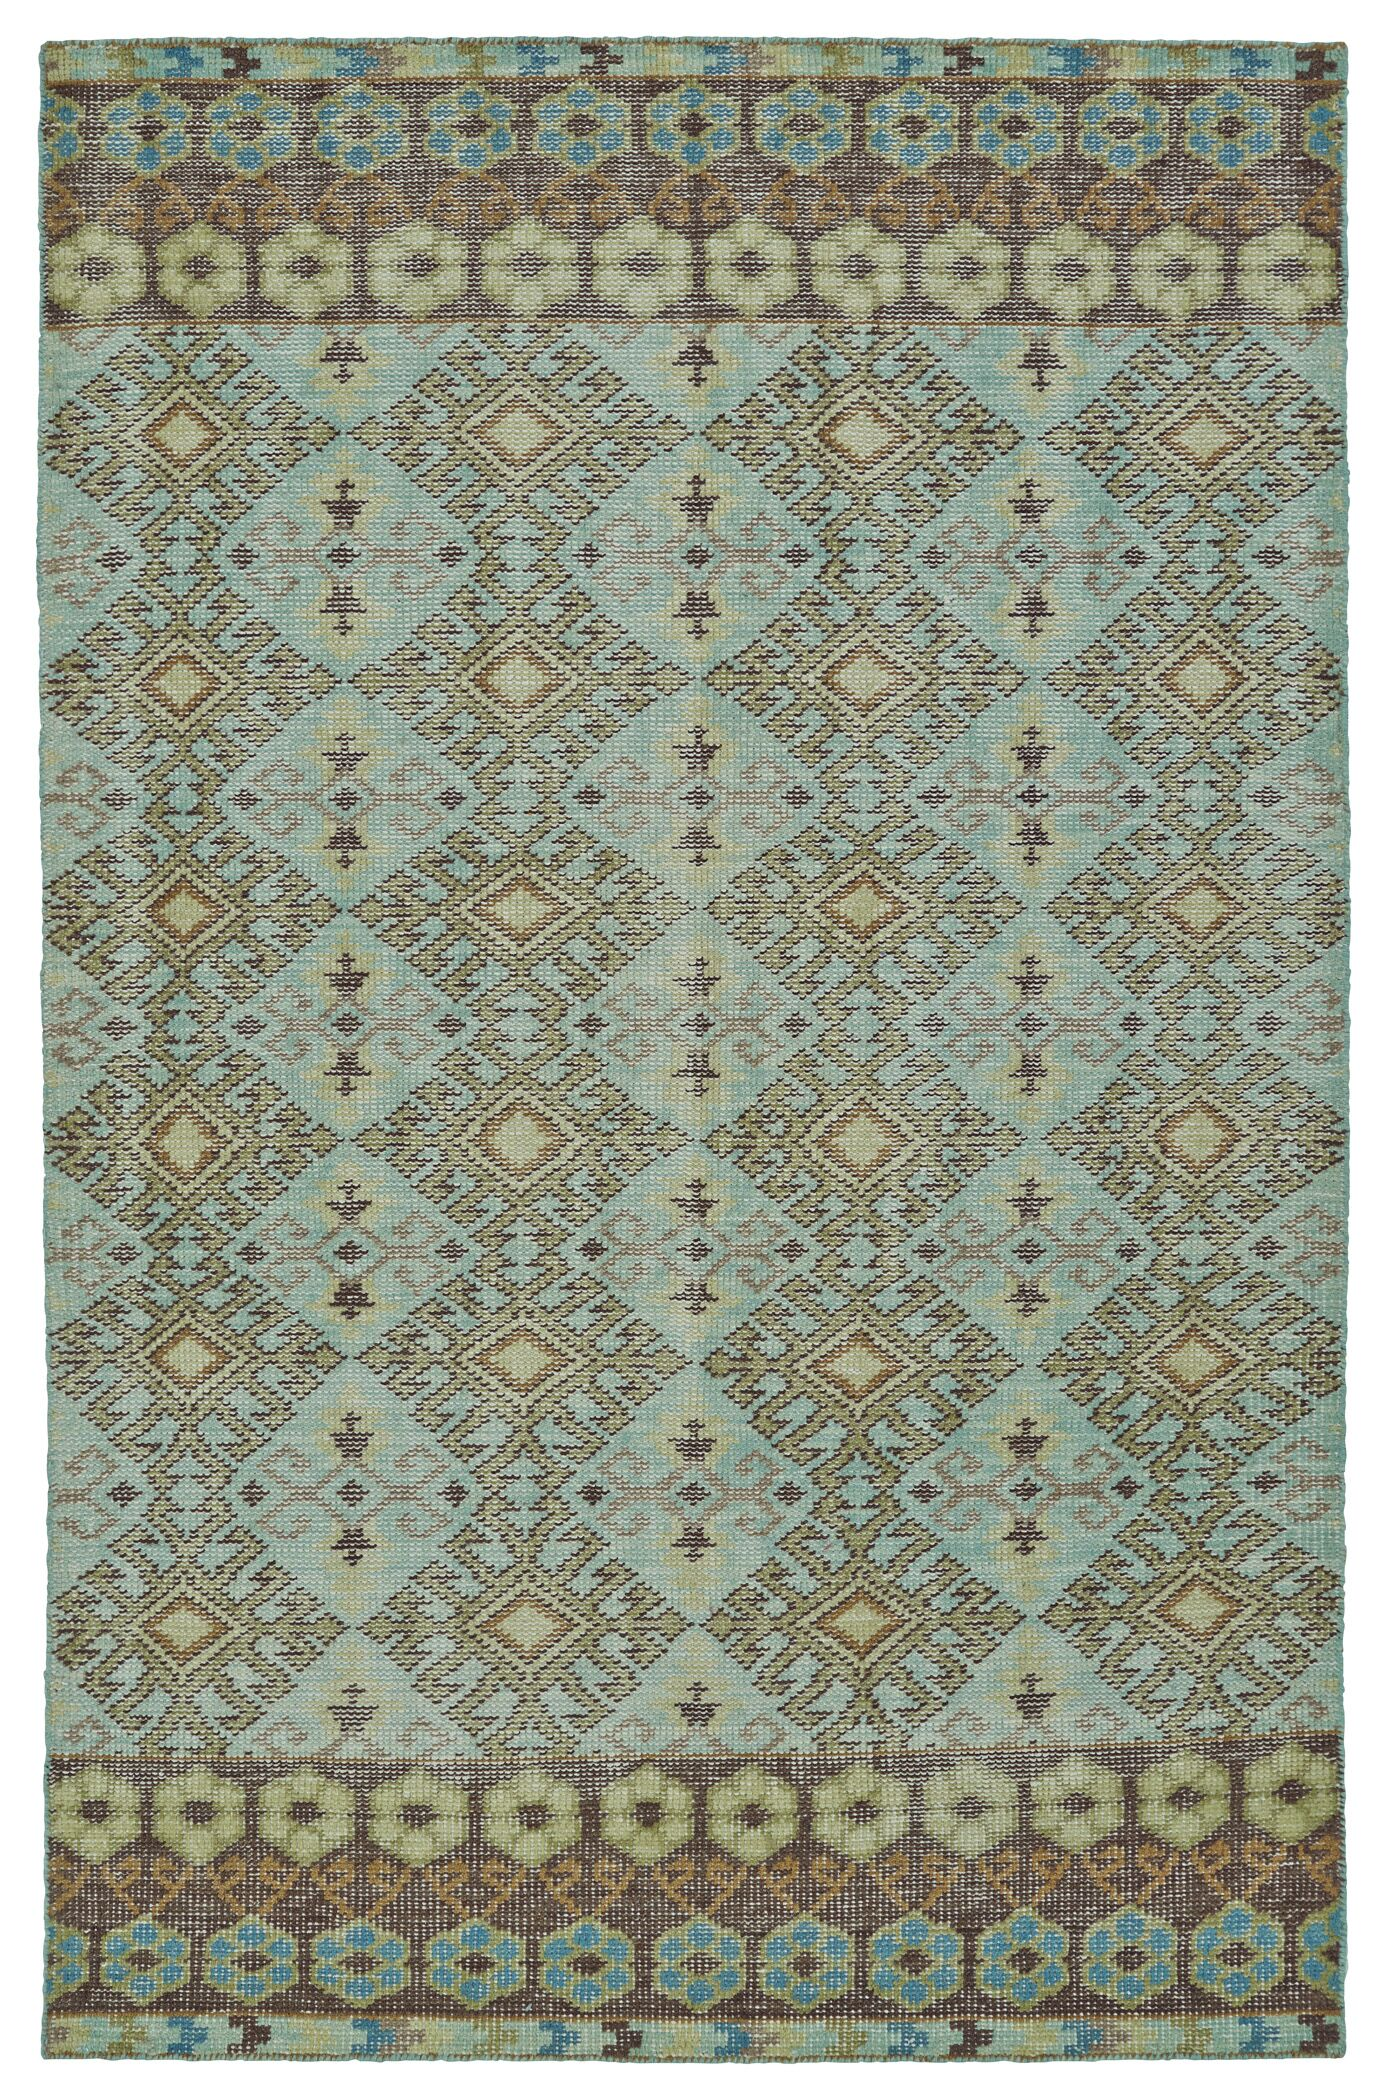 Masmoudi Hand-Knotted Turquoise Area Rug Rug Size: Rectangle 5'6